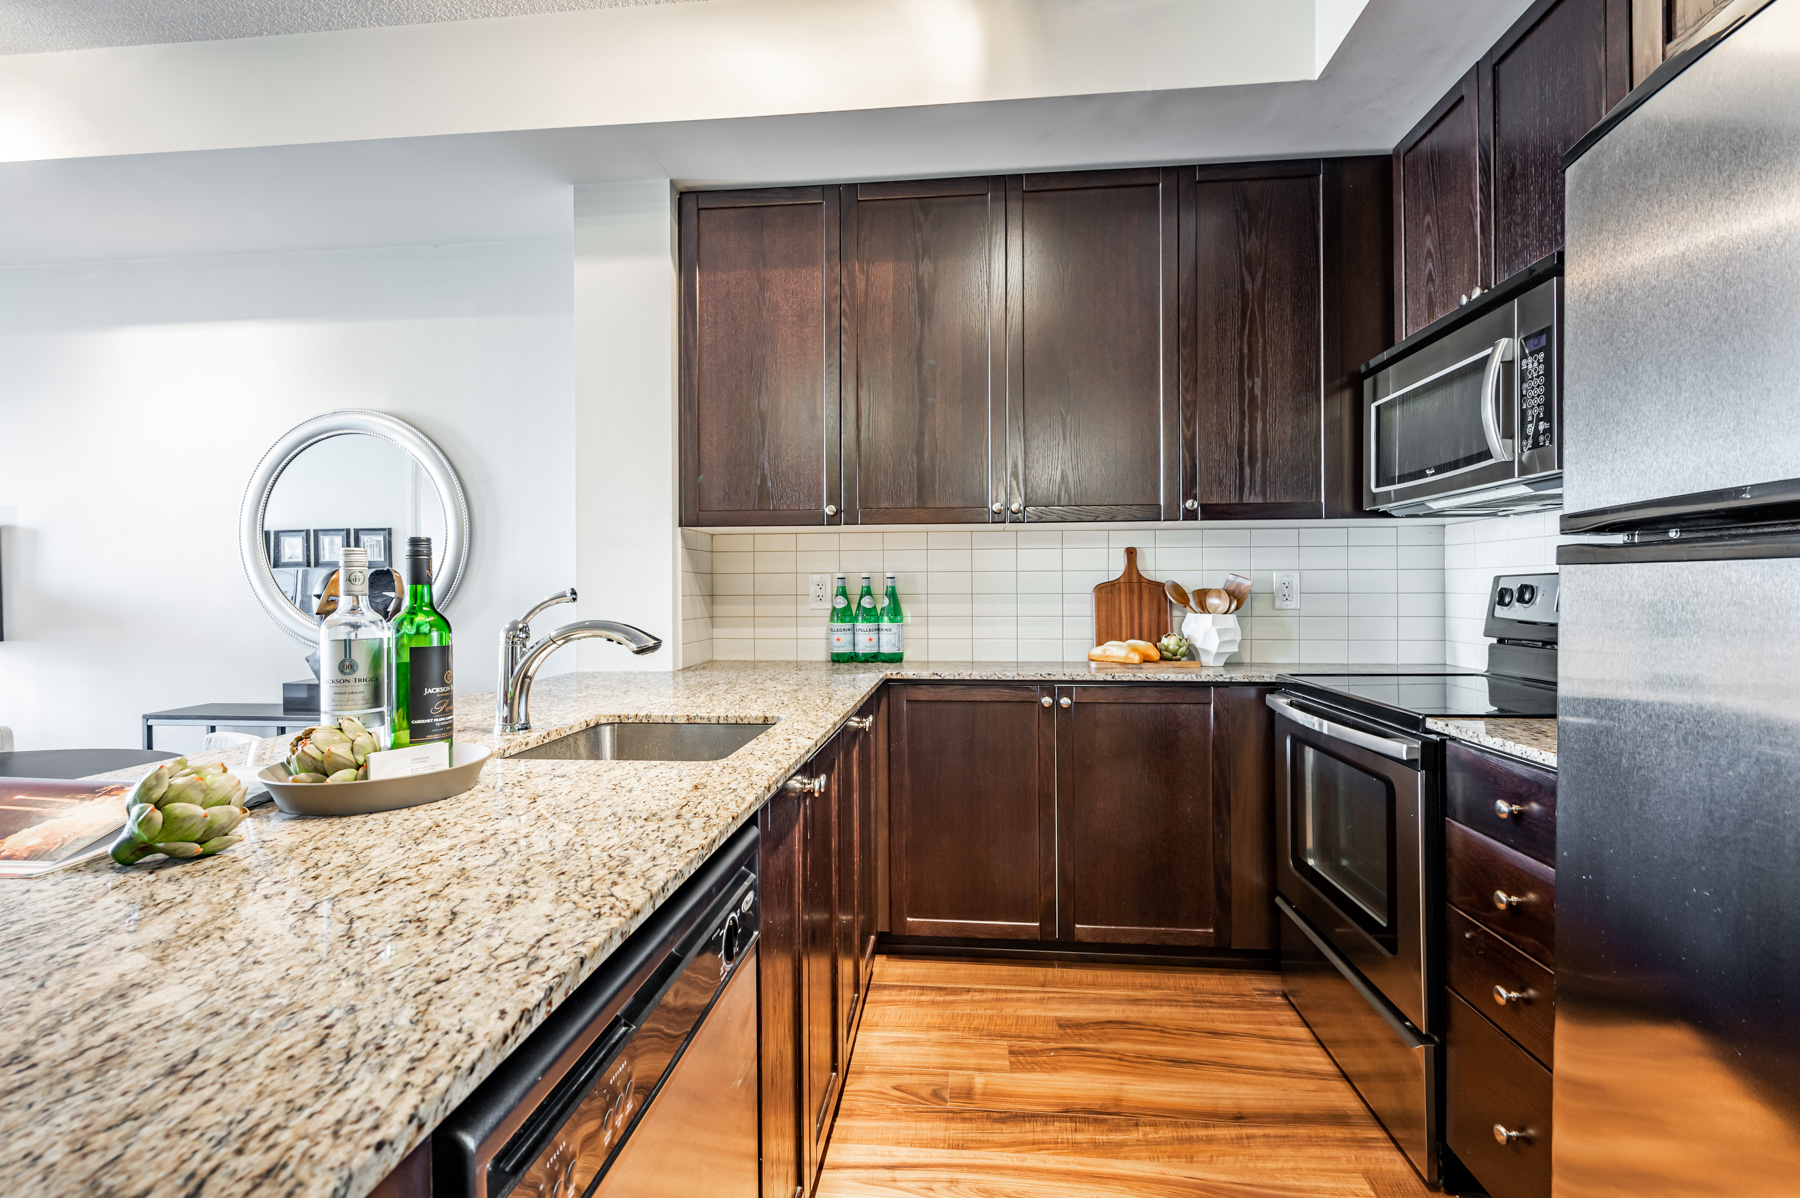 U-shaped condo kitchen with granite counters, dark wood cabinets and porcelain backsplash.